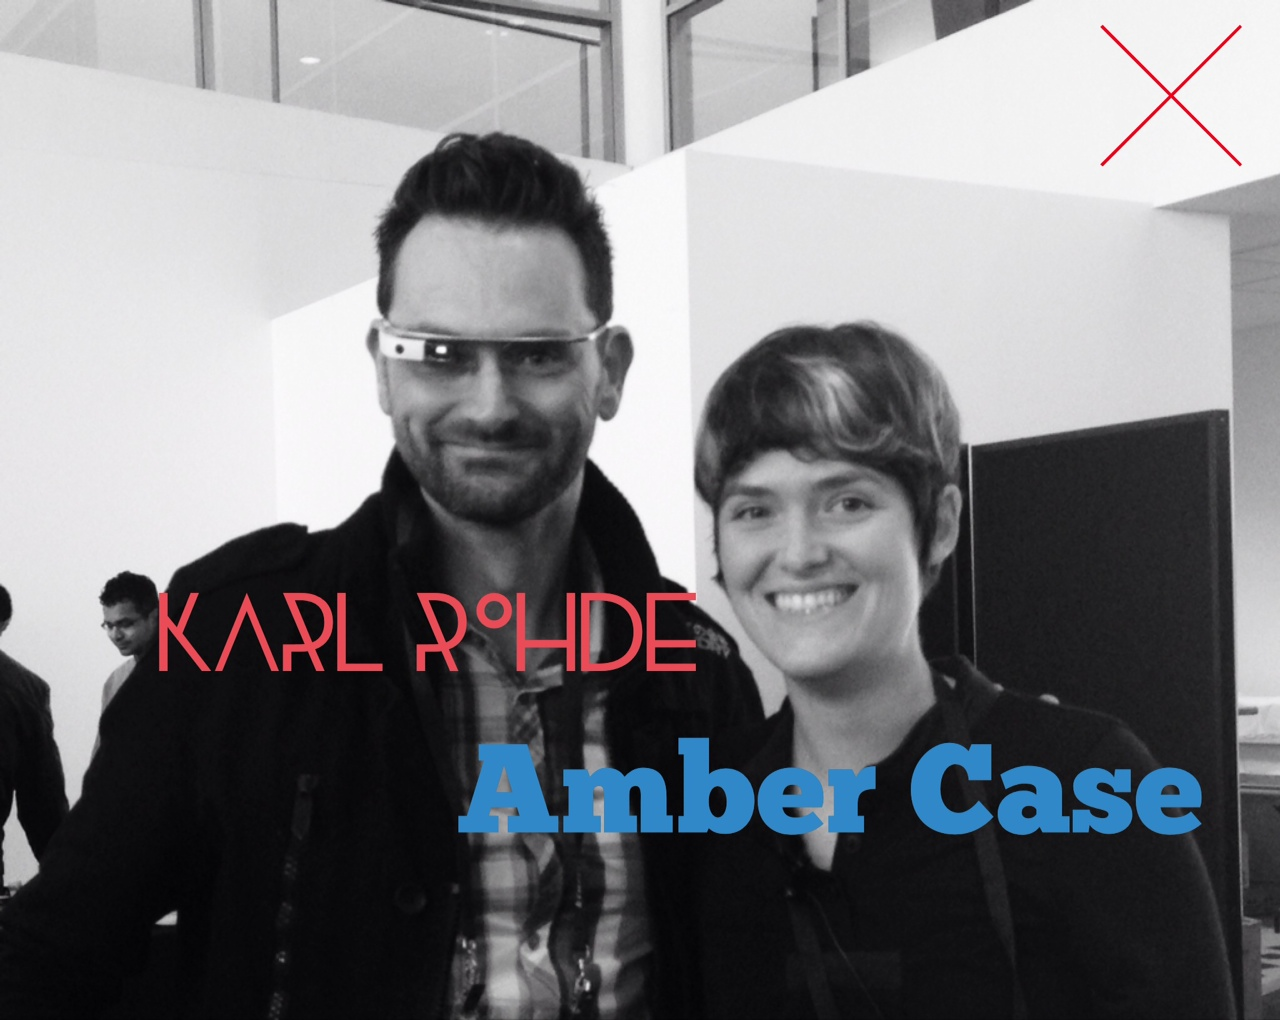 karl-rohde-and-amber-case.JPG